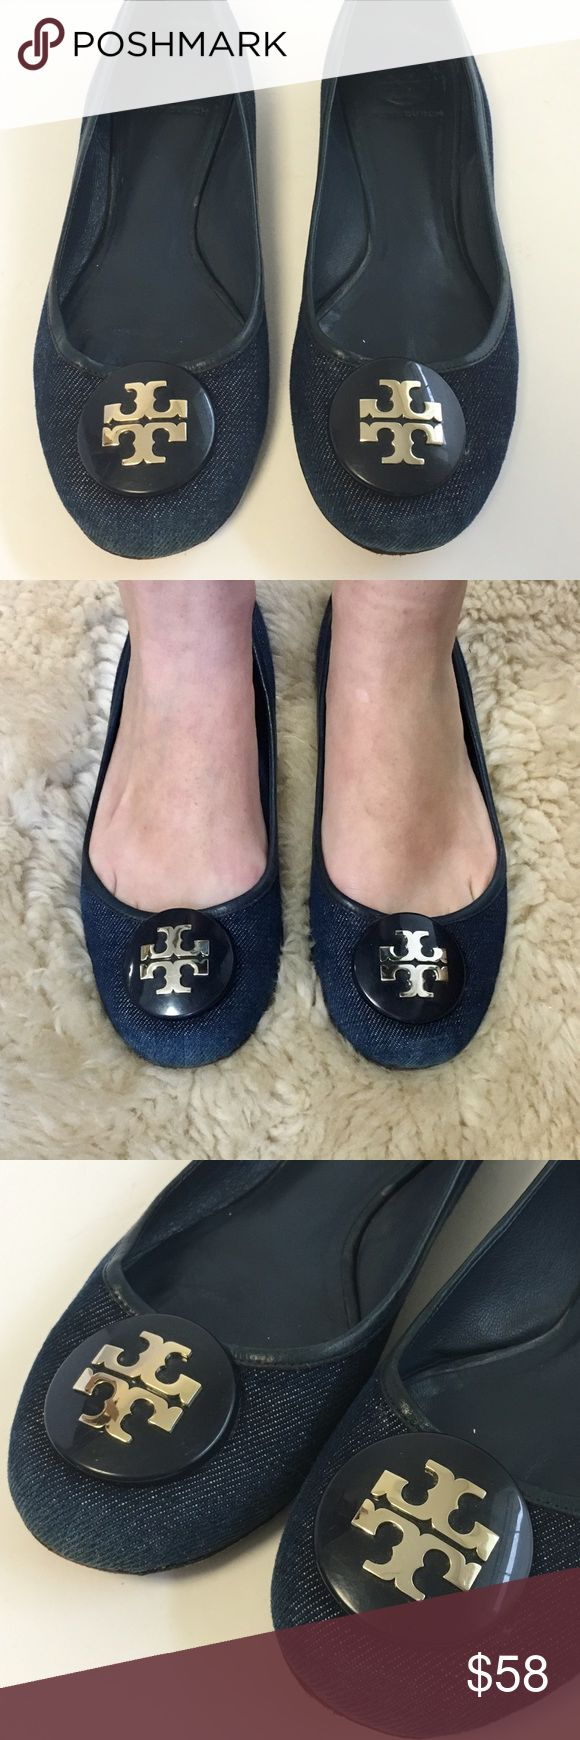 Tory Burch Reva Flats blue denim jean ballet shoes A fun pair of denim blue Tory Burch Reva flats with silver logos. These ballet flats are great for everyday and look good with jeans. These have been loved and worn quite a bit and show wear to the denim and the interior and exterior soles. They still look good on and have lots of life left! Please review all photos and use them as part of the description. These are marked size 8 1/2 and seem like they would work for someone who wears size…